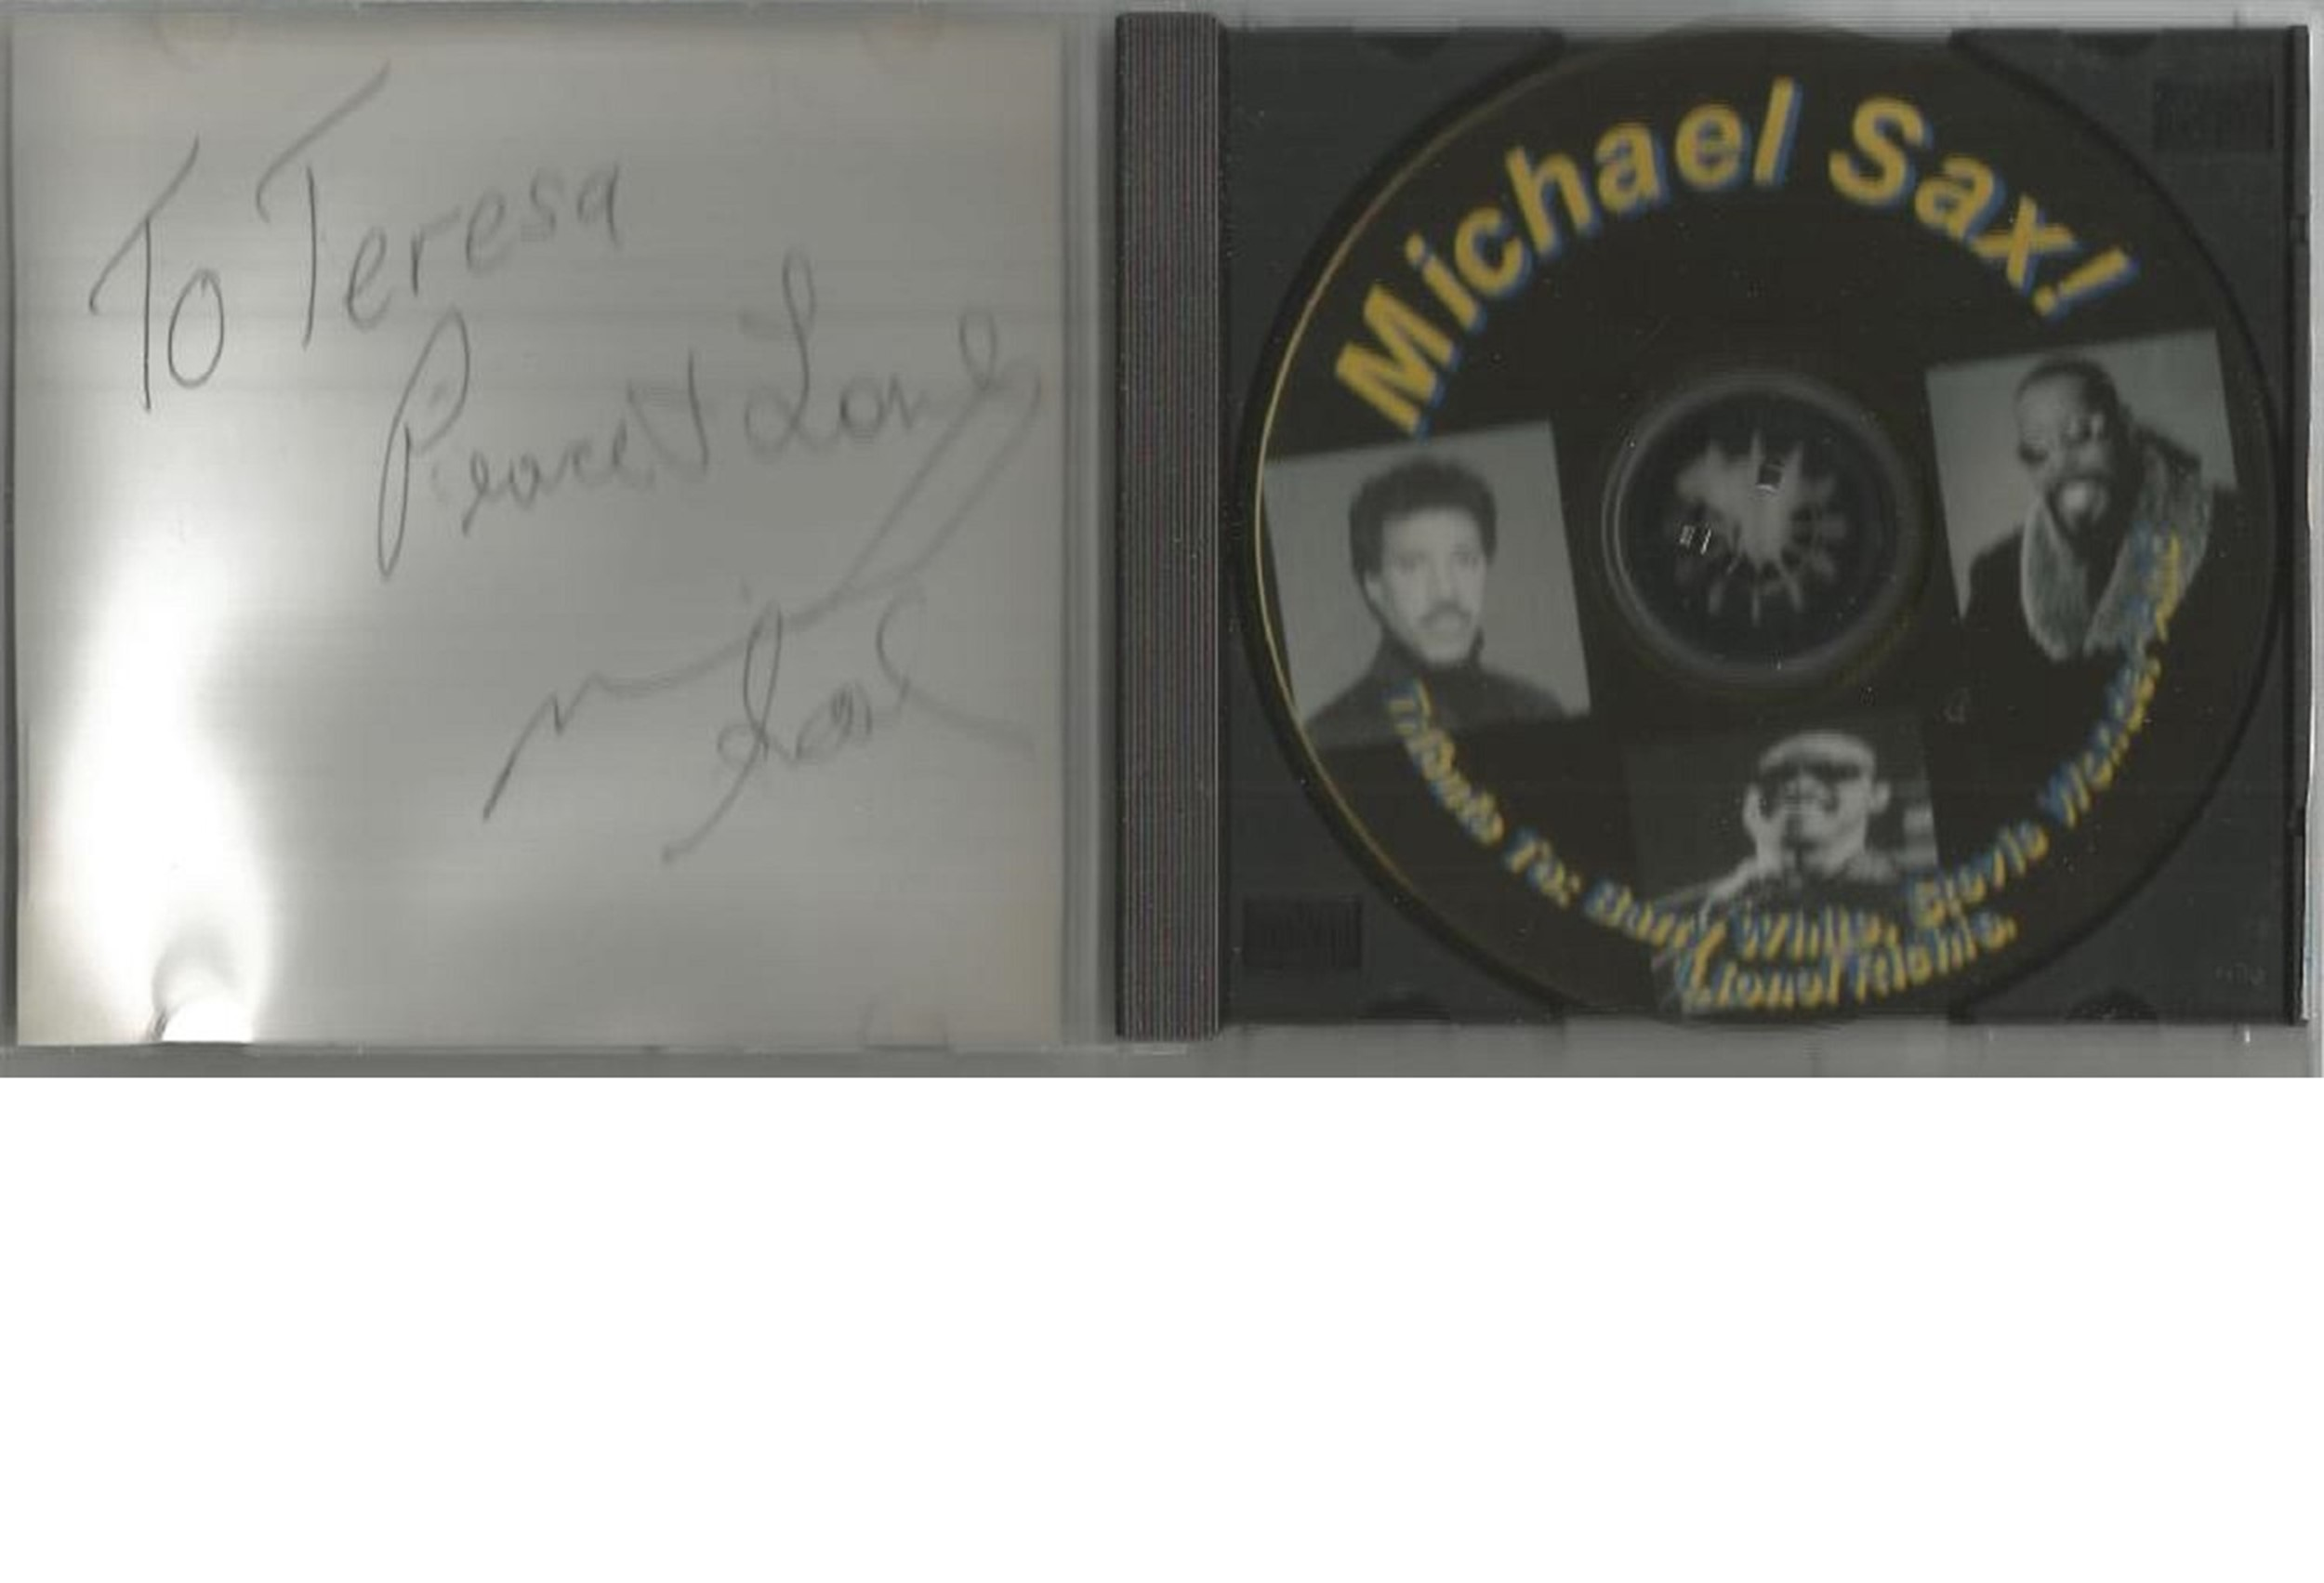 5 Signed and Unsigned CDs Including Original Cast Recording Rasputinas Oh Perilous World Unsigned, - Image 3 of 3